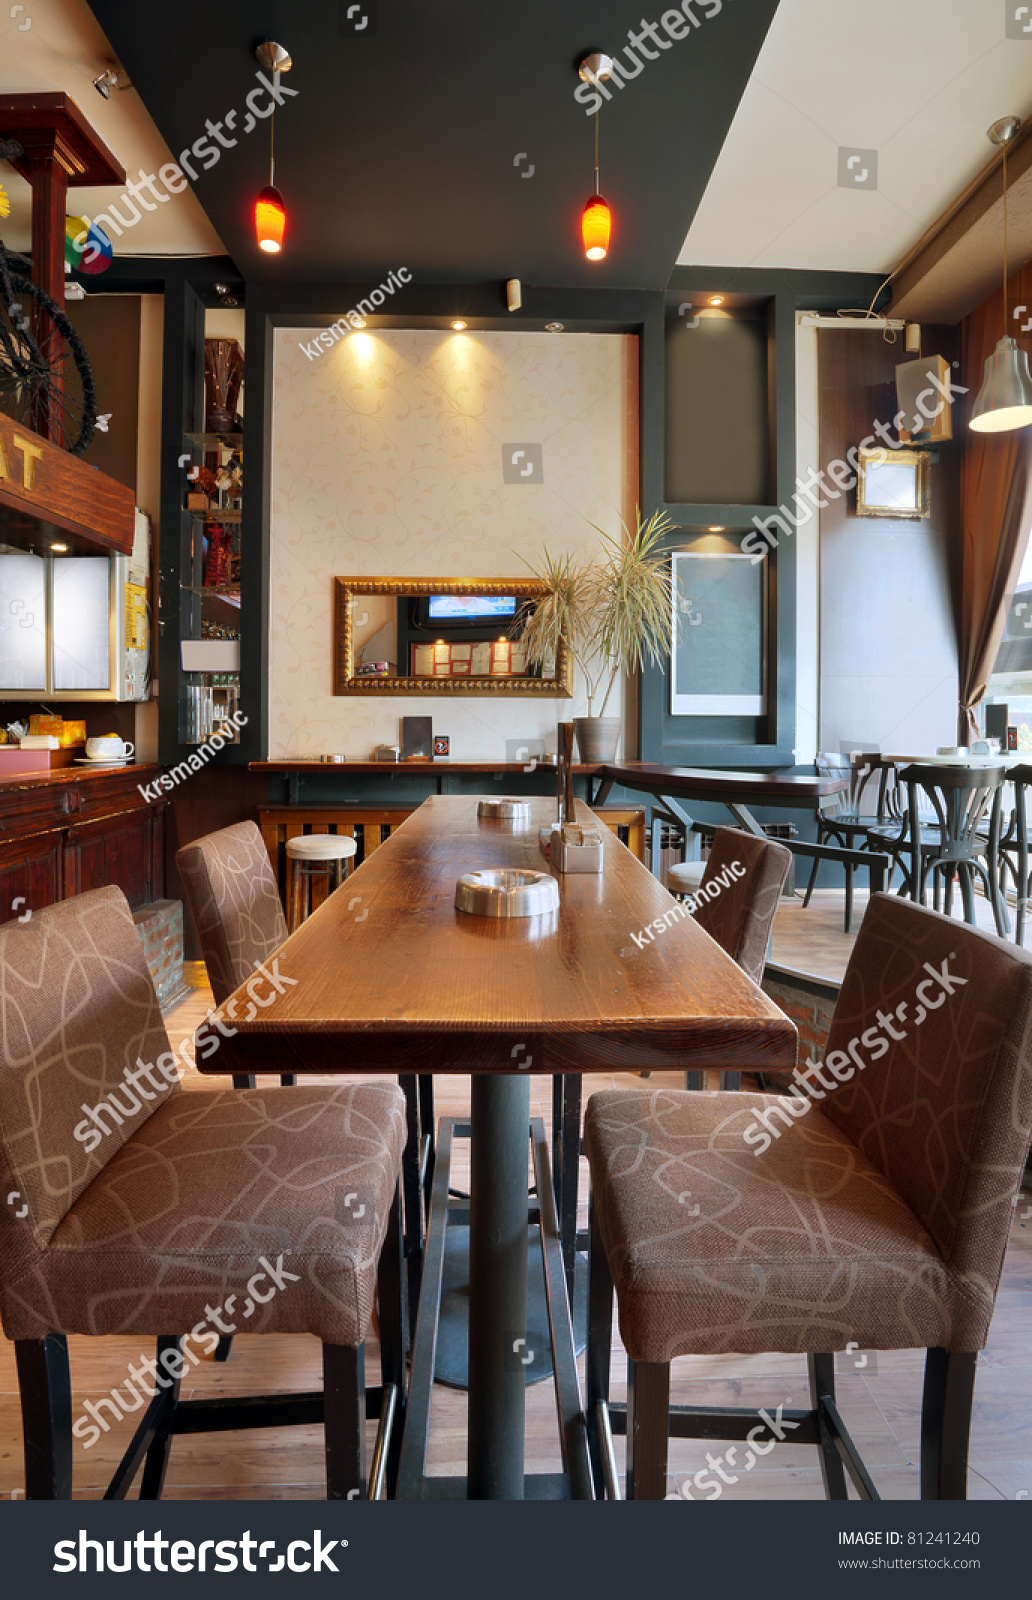 Modern cafe furniture - Modern Cafe Furniture Modern Cafe Furniture Lighting Equipment And Download